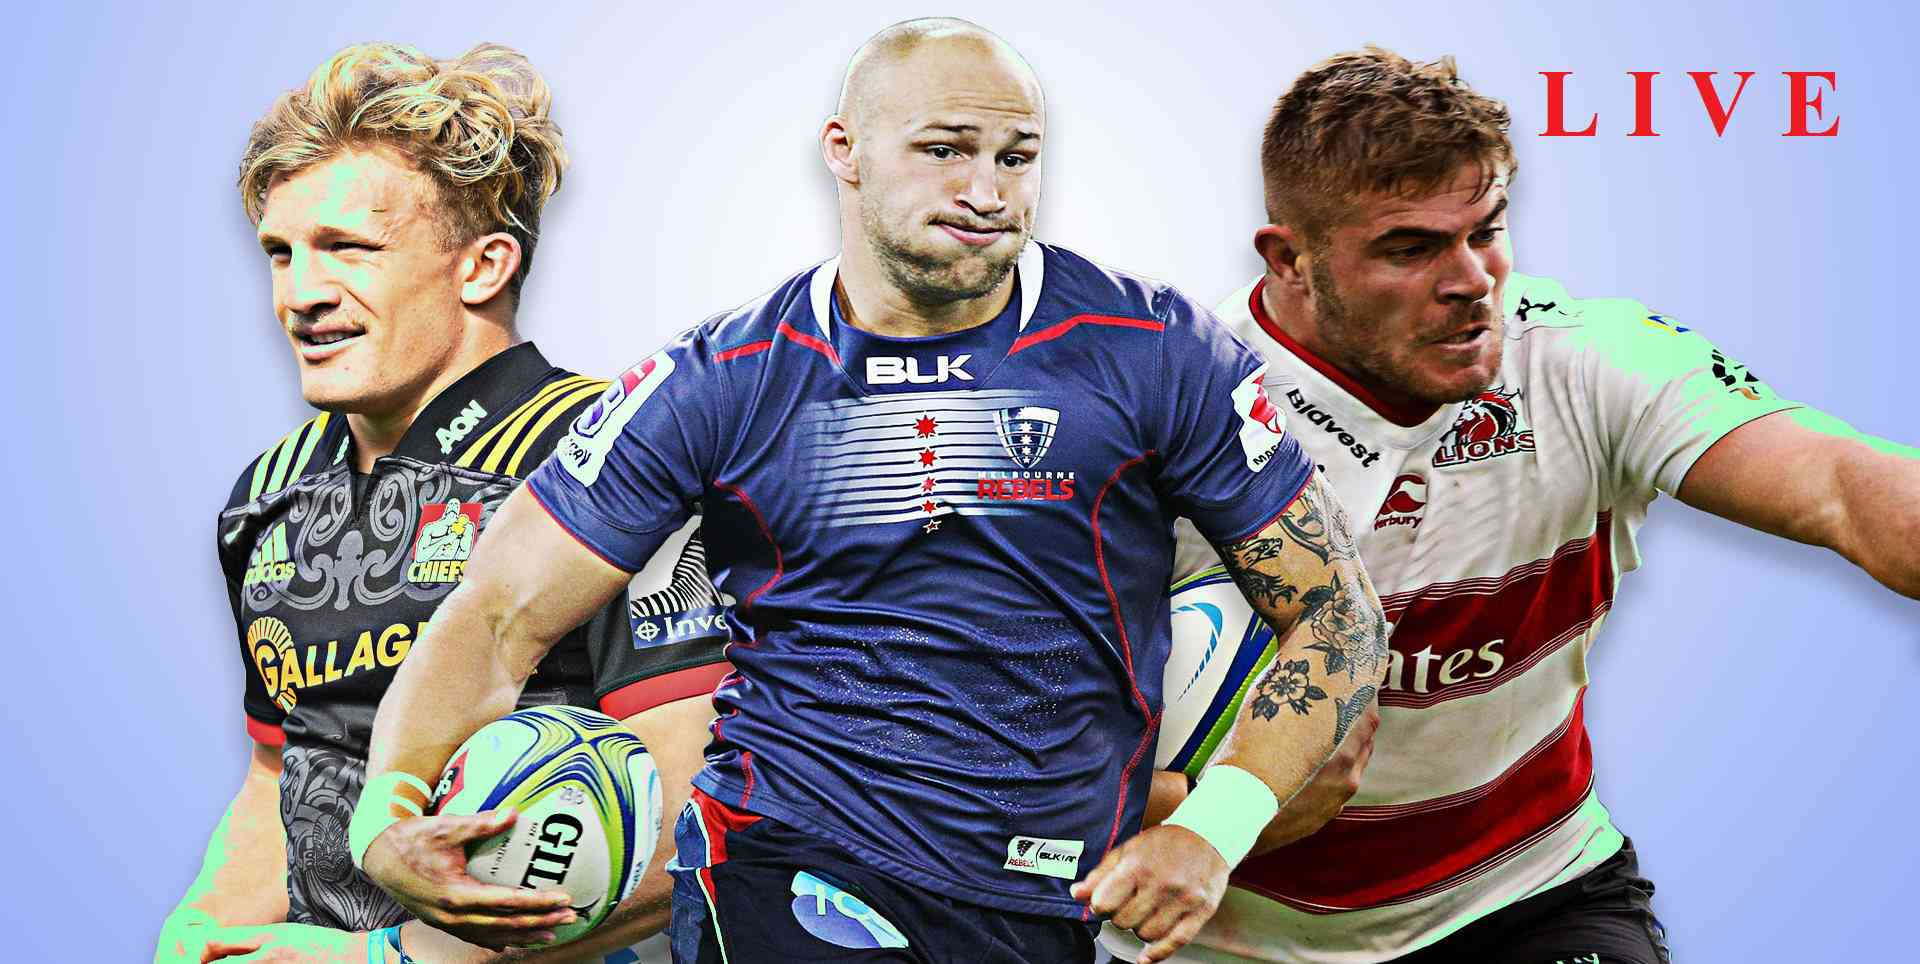 2016 Grenoble vs Brive Live Streaming